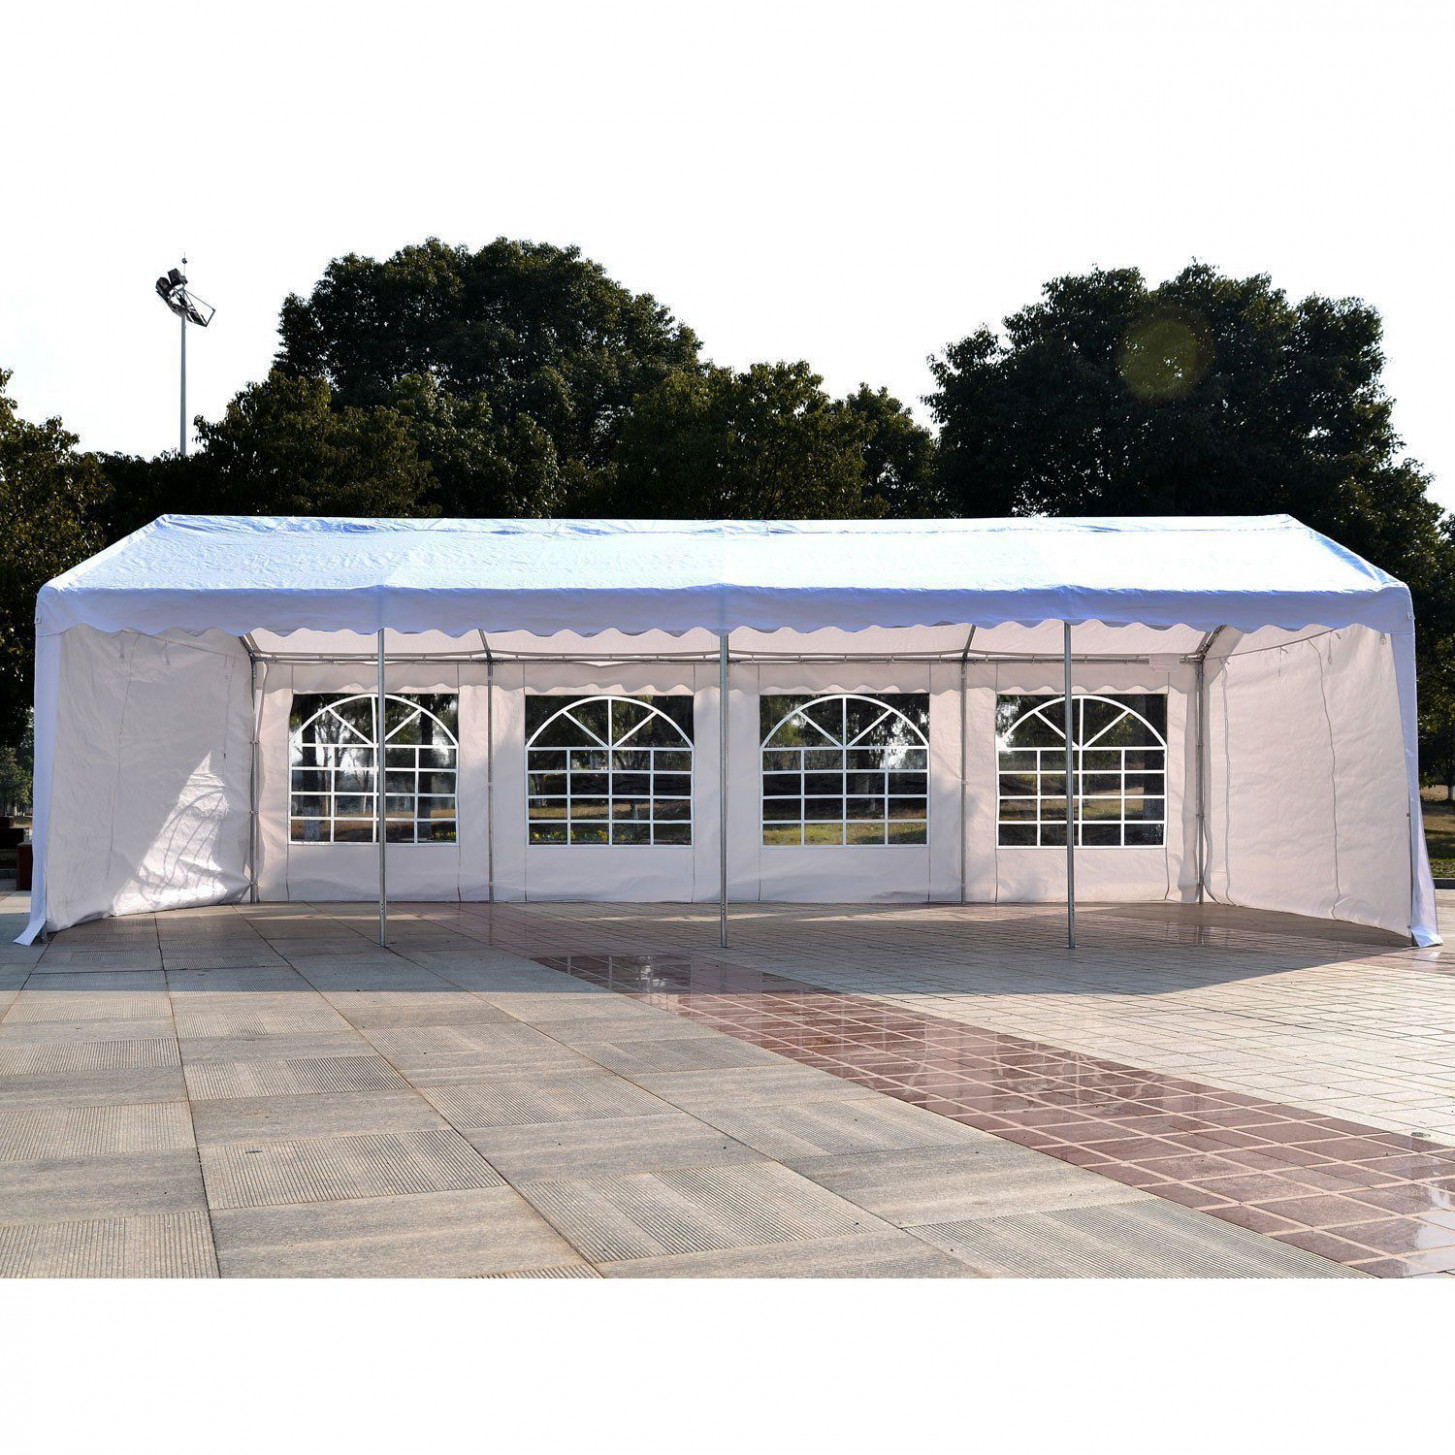 Outsunny 12'x12' Heavy-duty Outdoor Carport Wedding Party Event Tent Patio  Gazebo Canopy with 12 Sidewalls, White